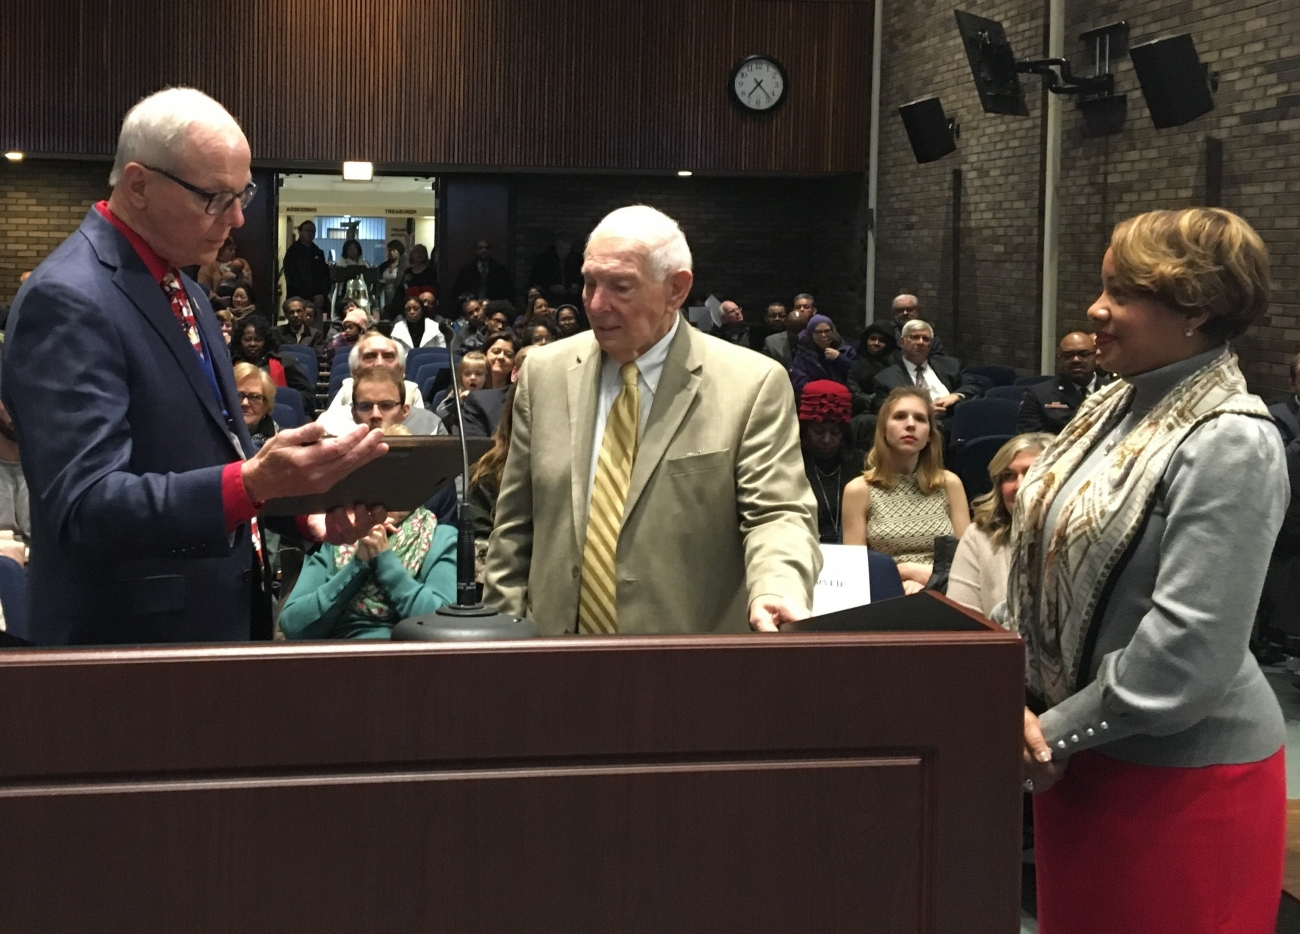 Mayor Ken Siver presents a Joint Resolution to Donald Fracassi along with Council President Pro Tem Tawnya Morris